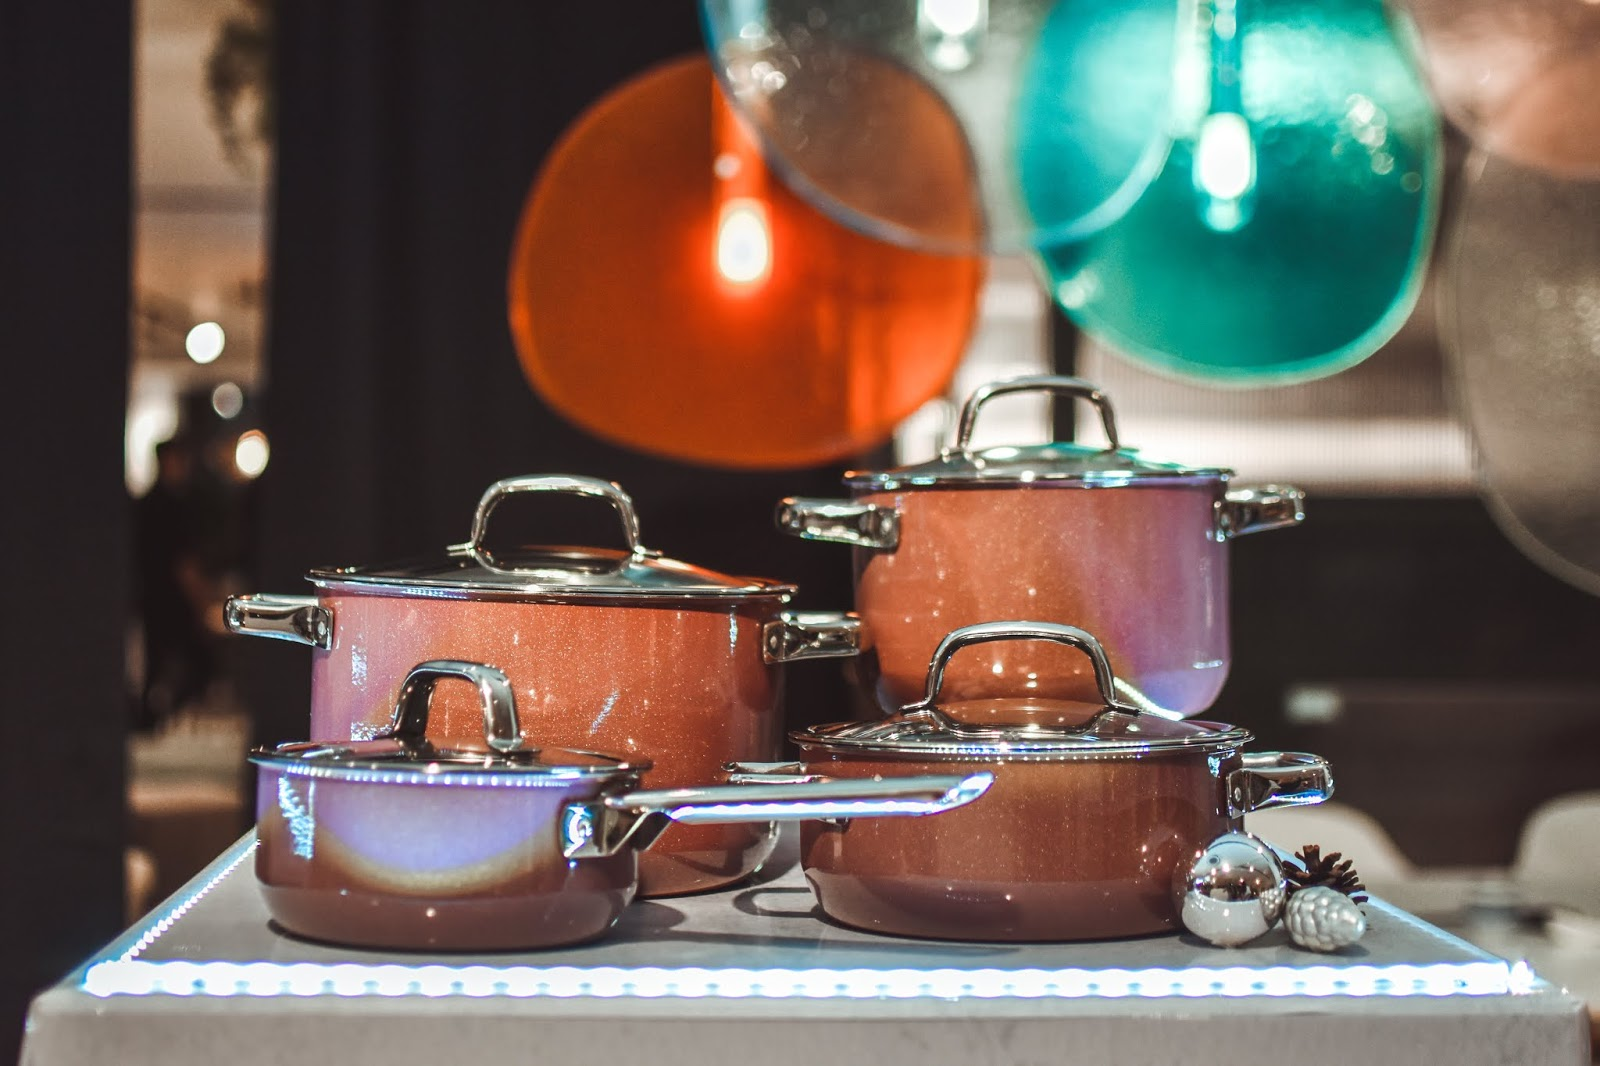 New chic and efficient WMF cookware for urban kitchens! - Chantalmag